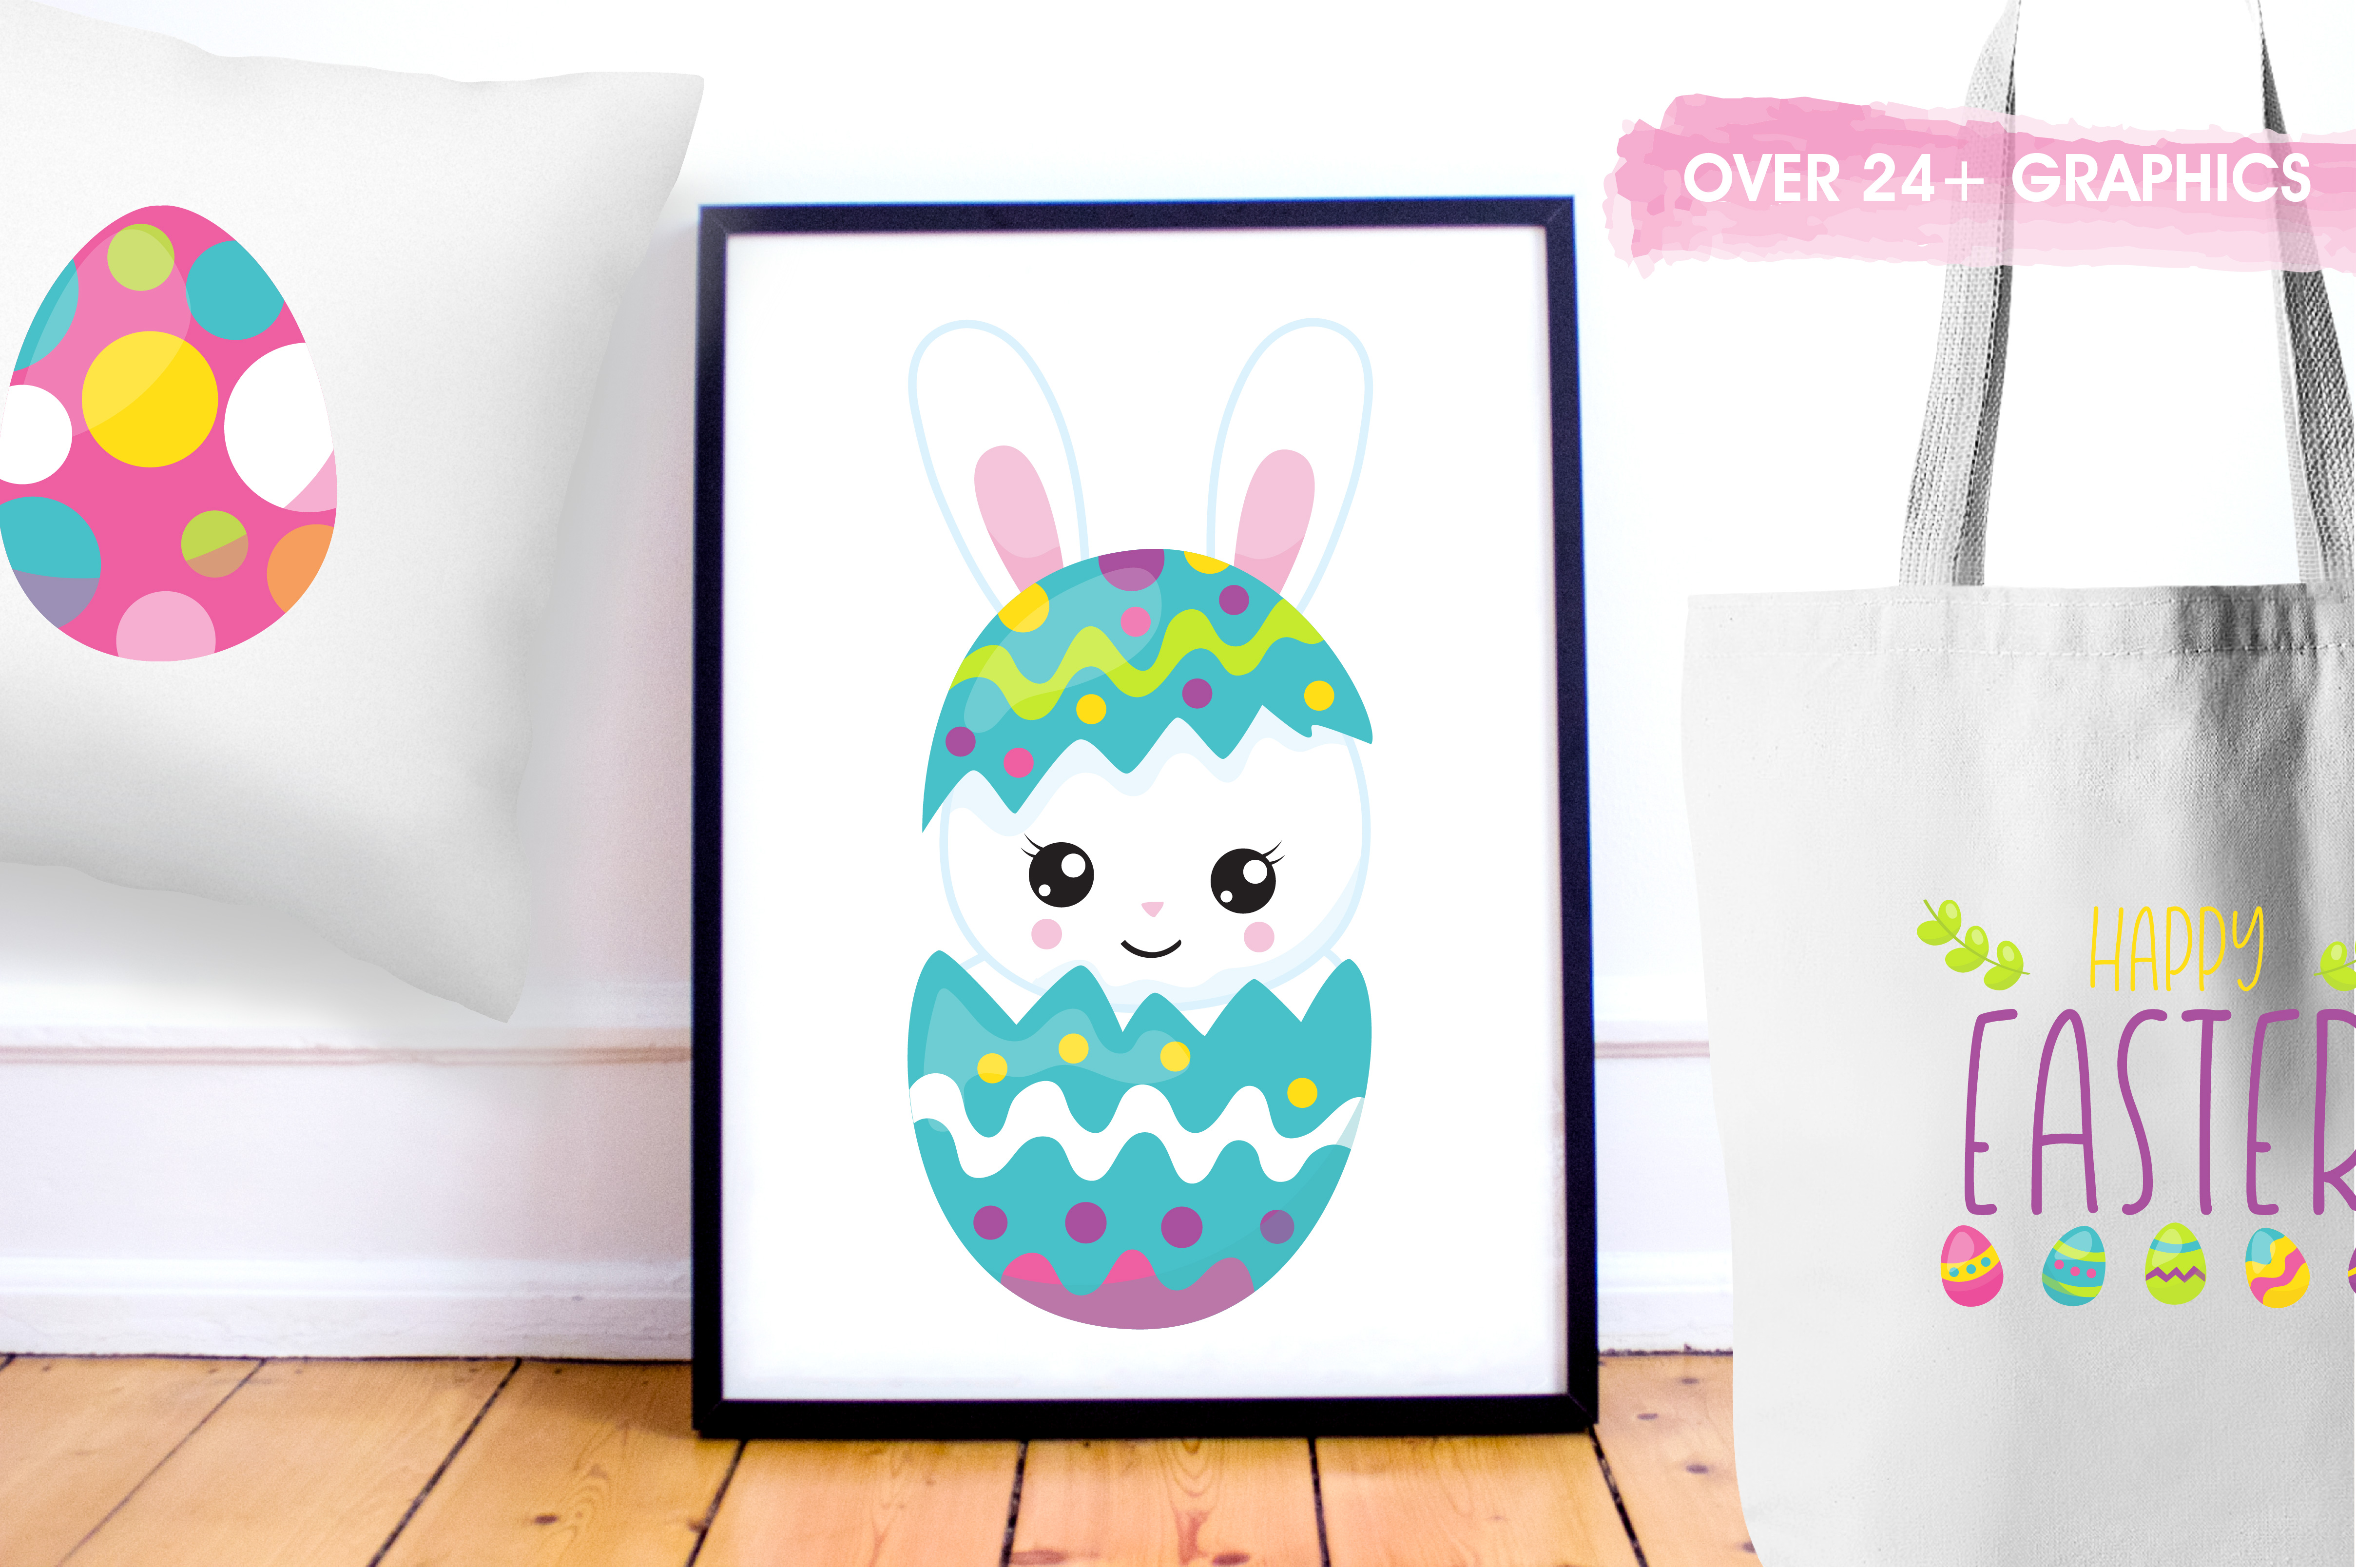 Happy Easter graphics and illustrations example image 5